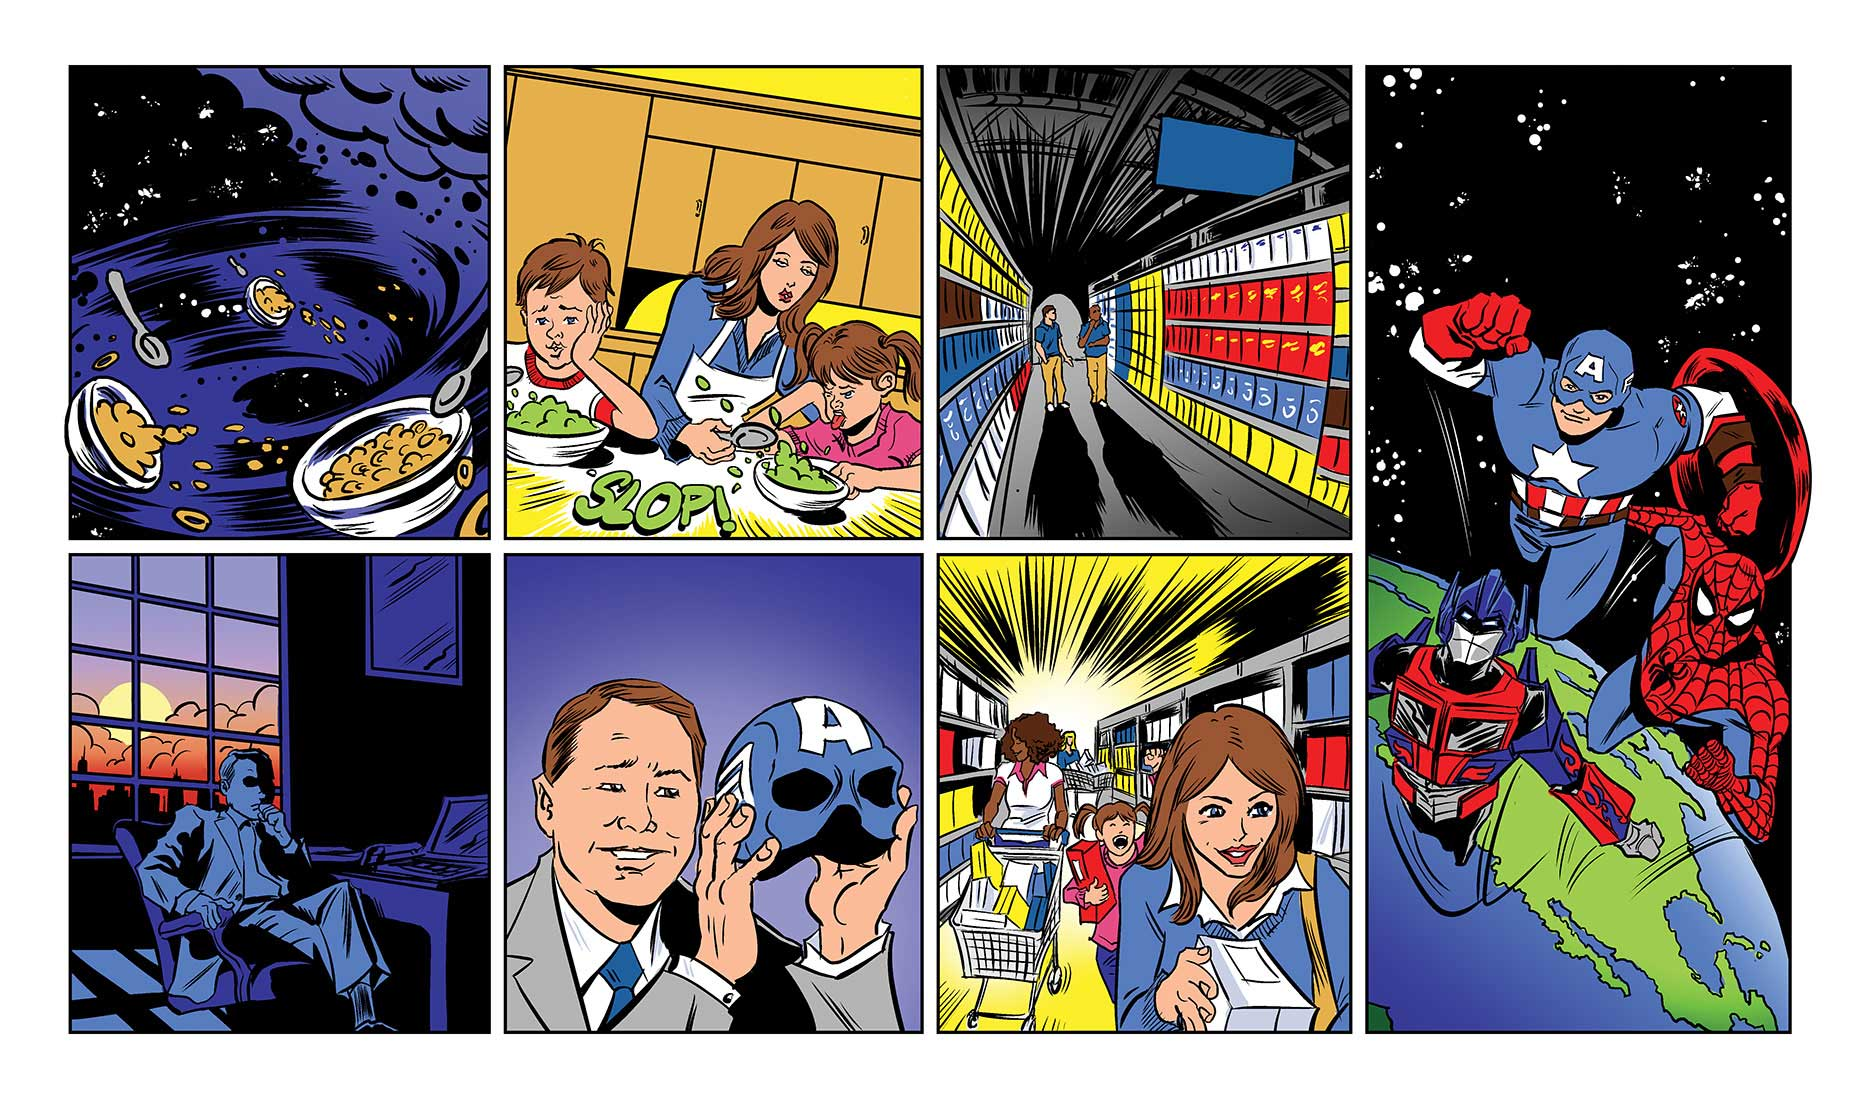 illustration-Comics_Capitain-America-cereal-Newtasty